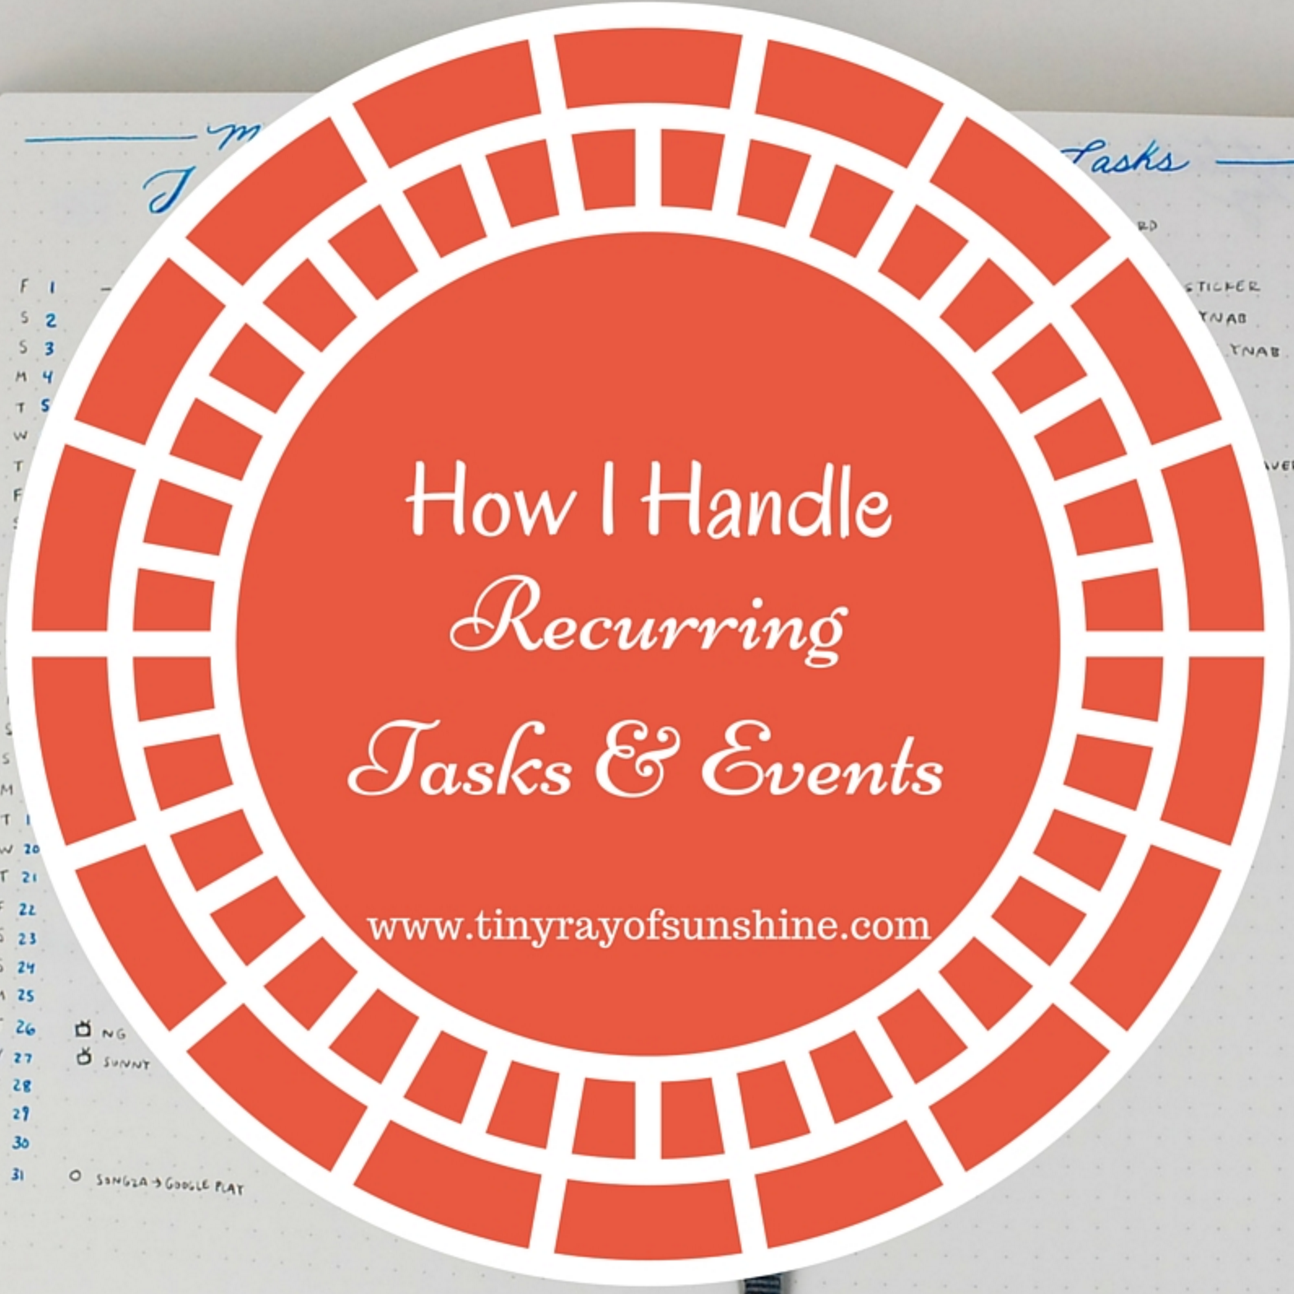 h ow I handle recurring tasks & events